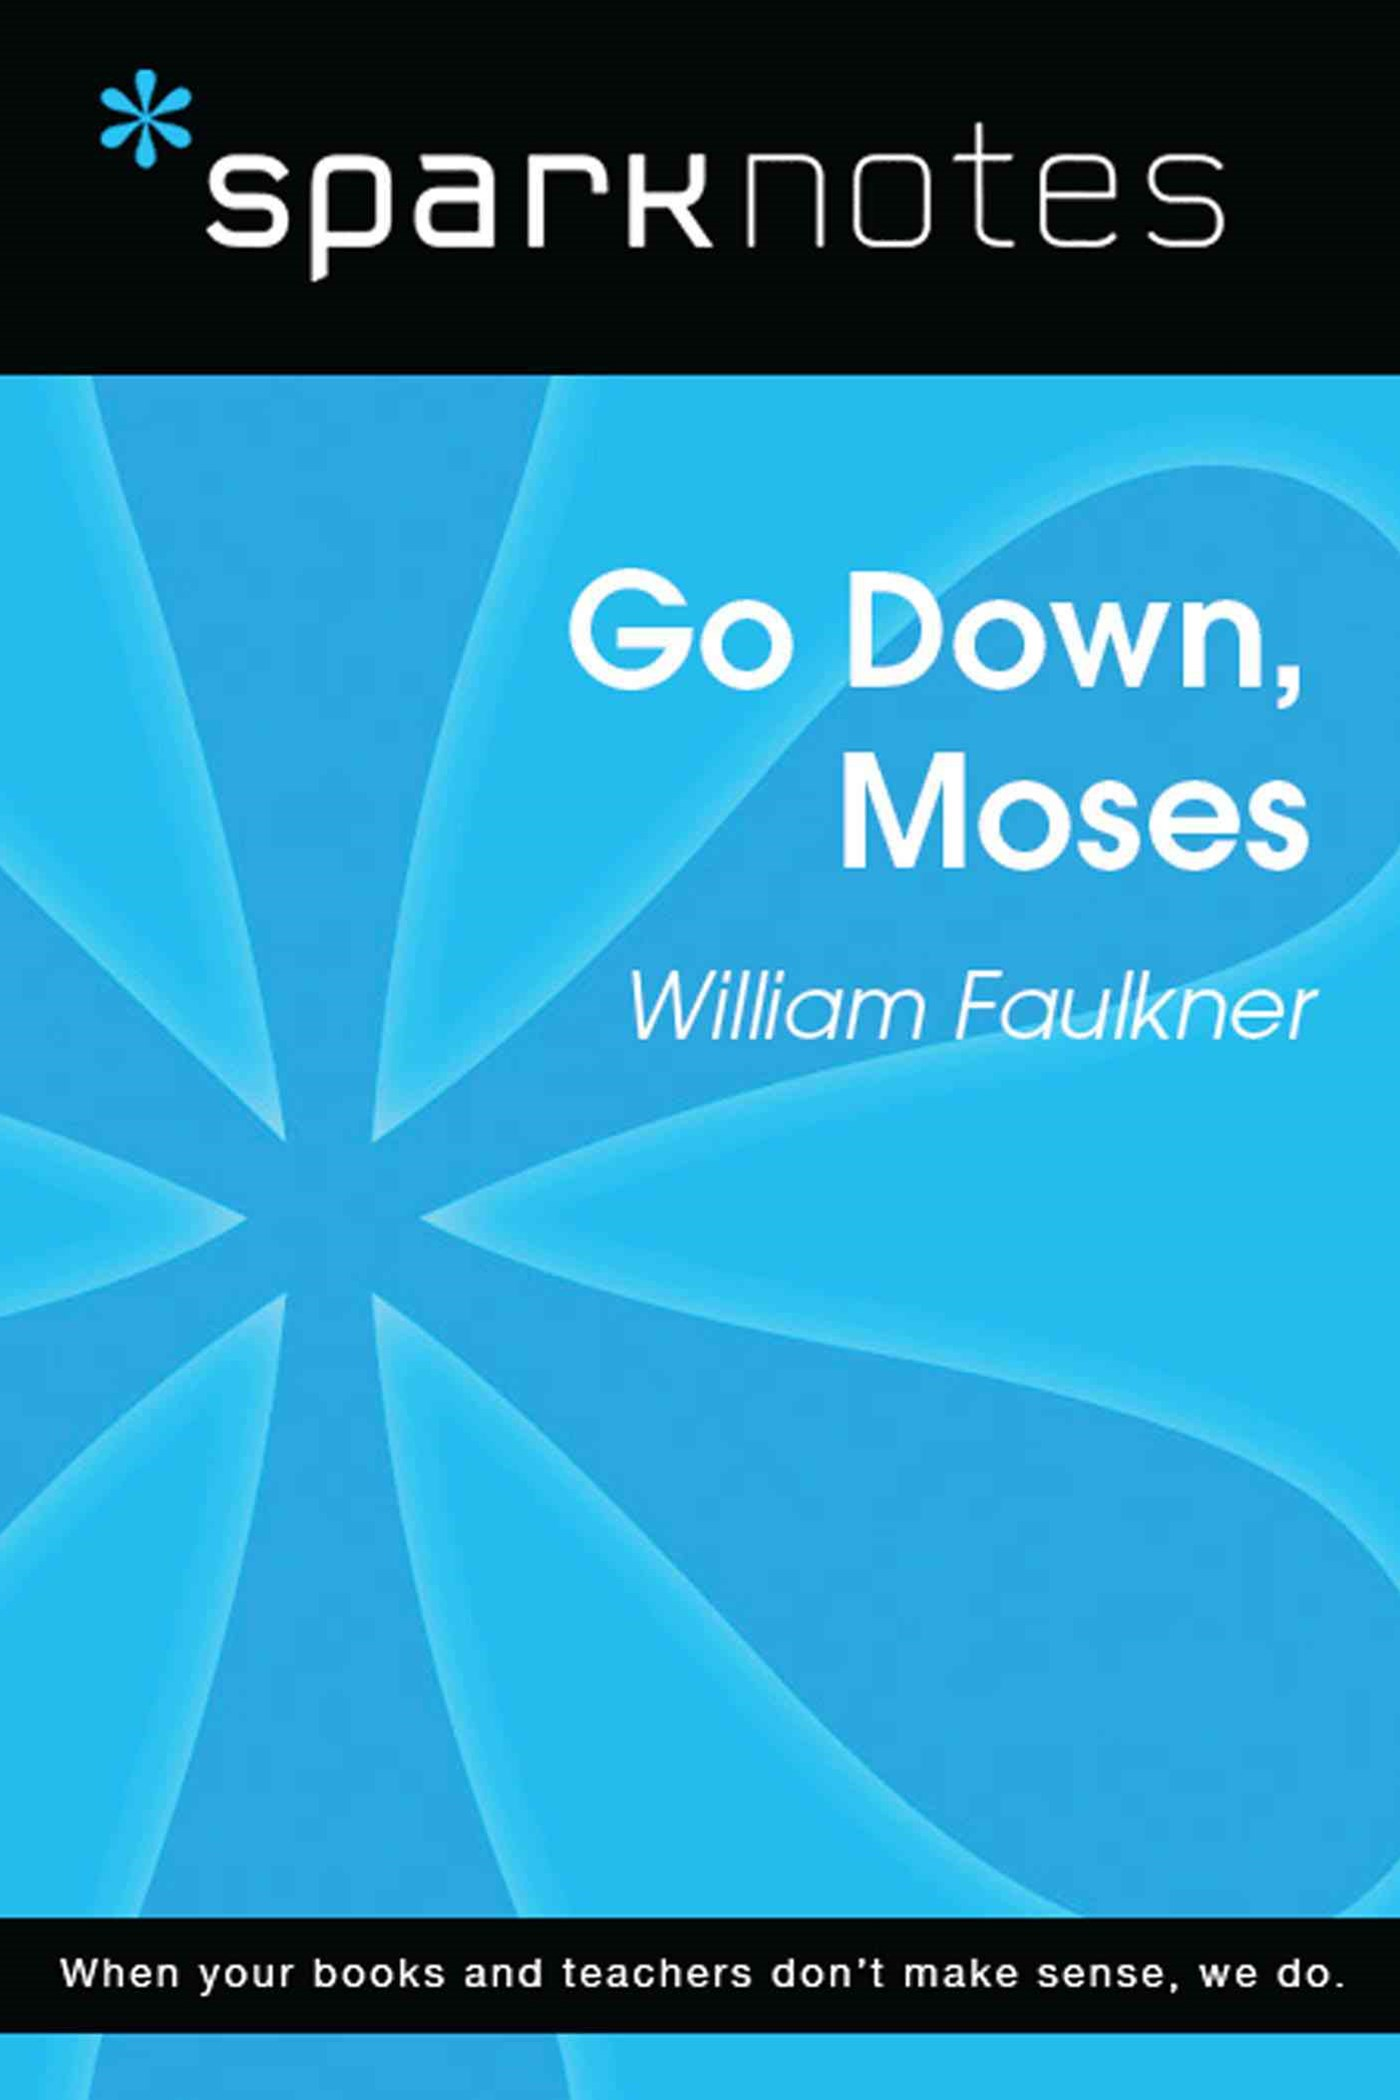 Go Down, Moses (SparkNotes Literature Guide)